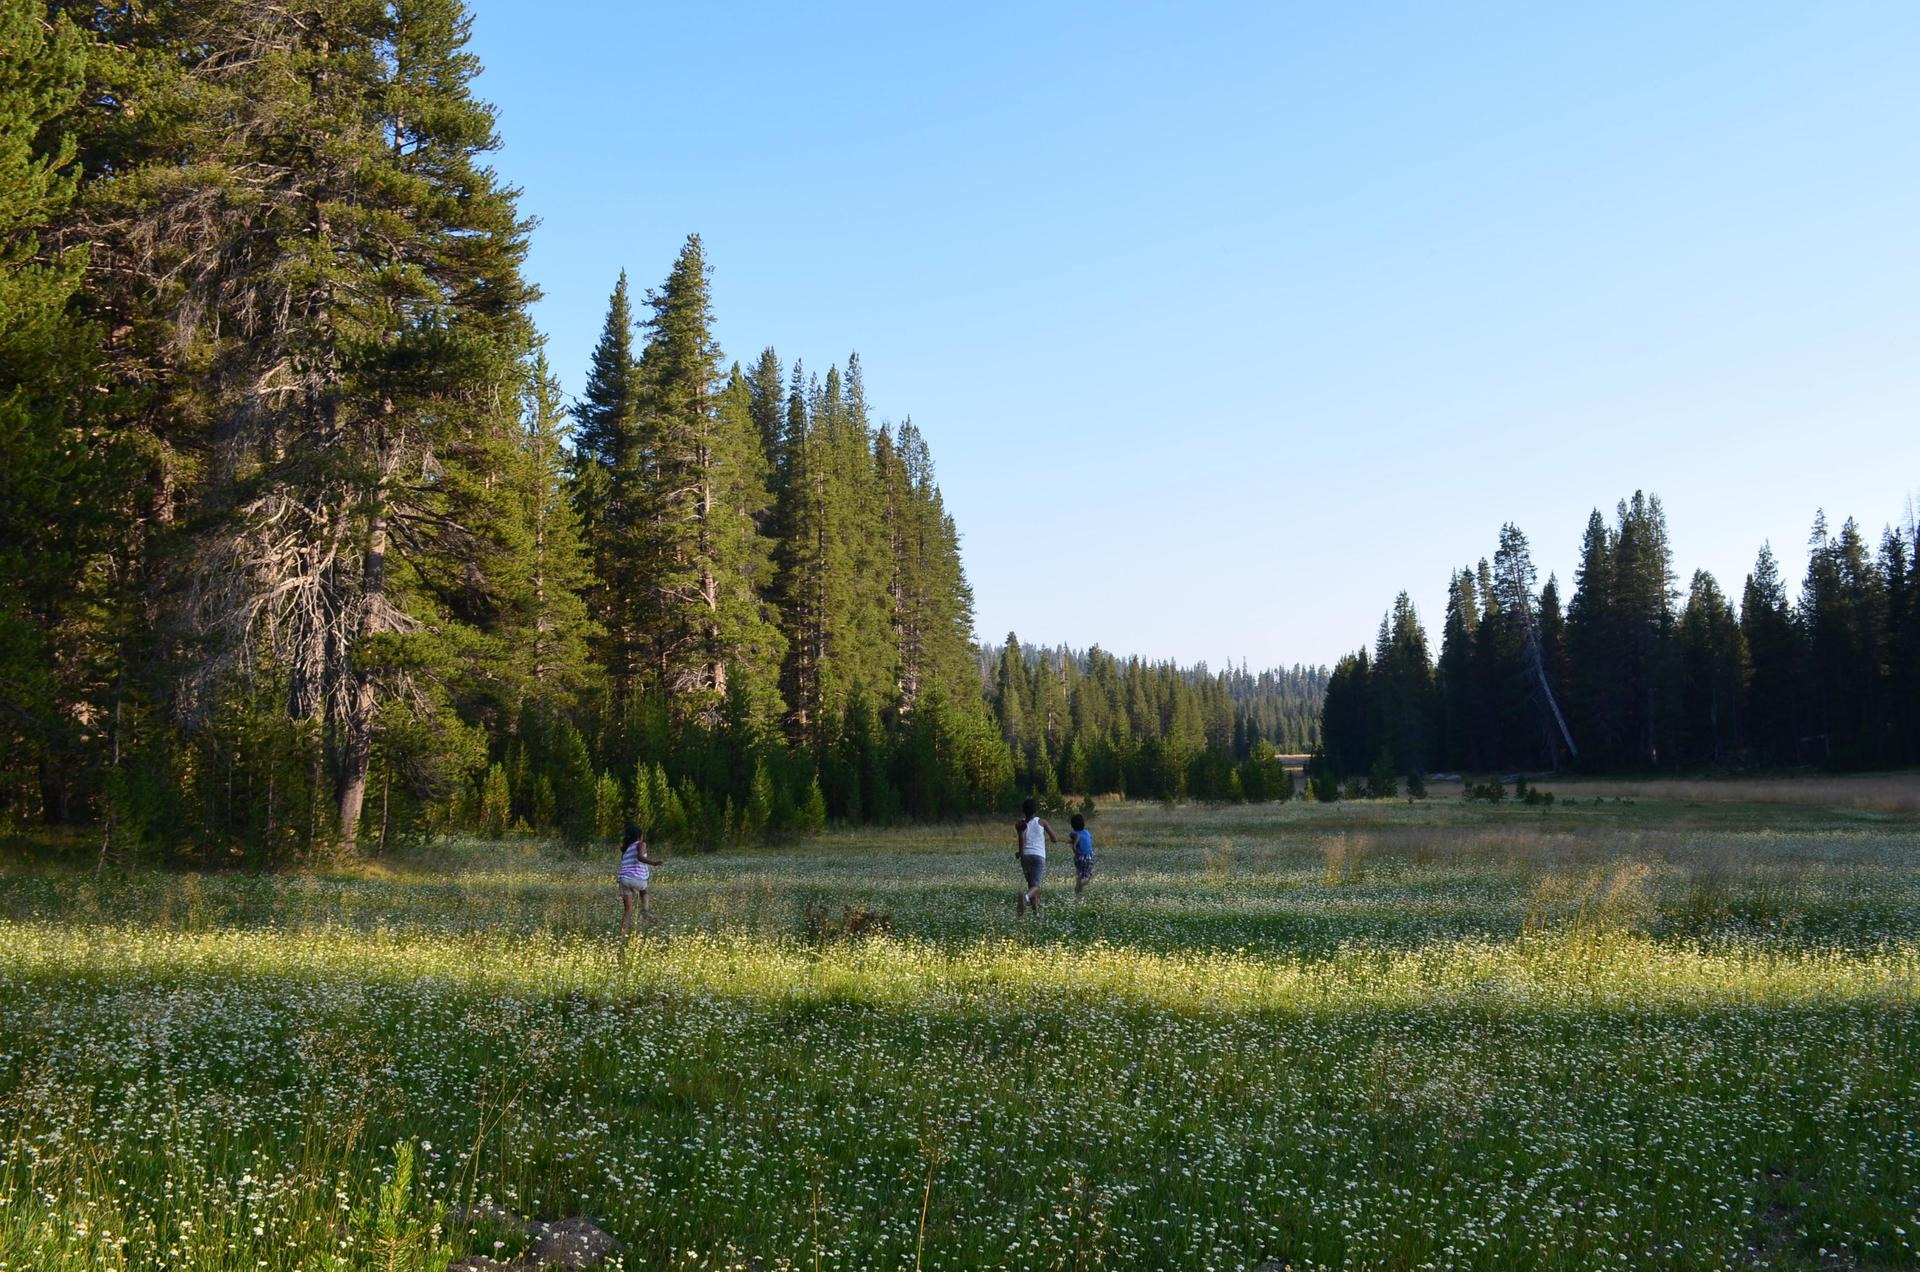 A Meadow in Sequoia National Park